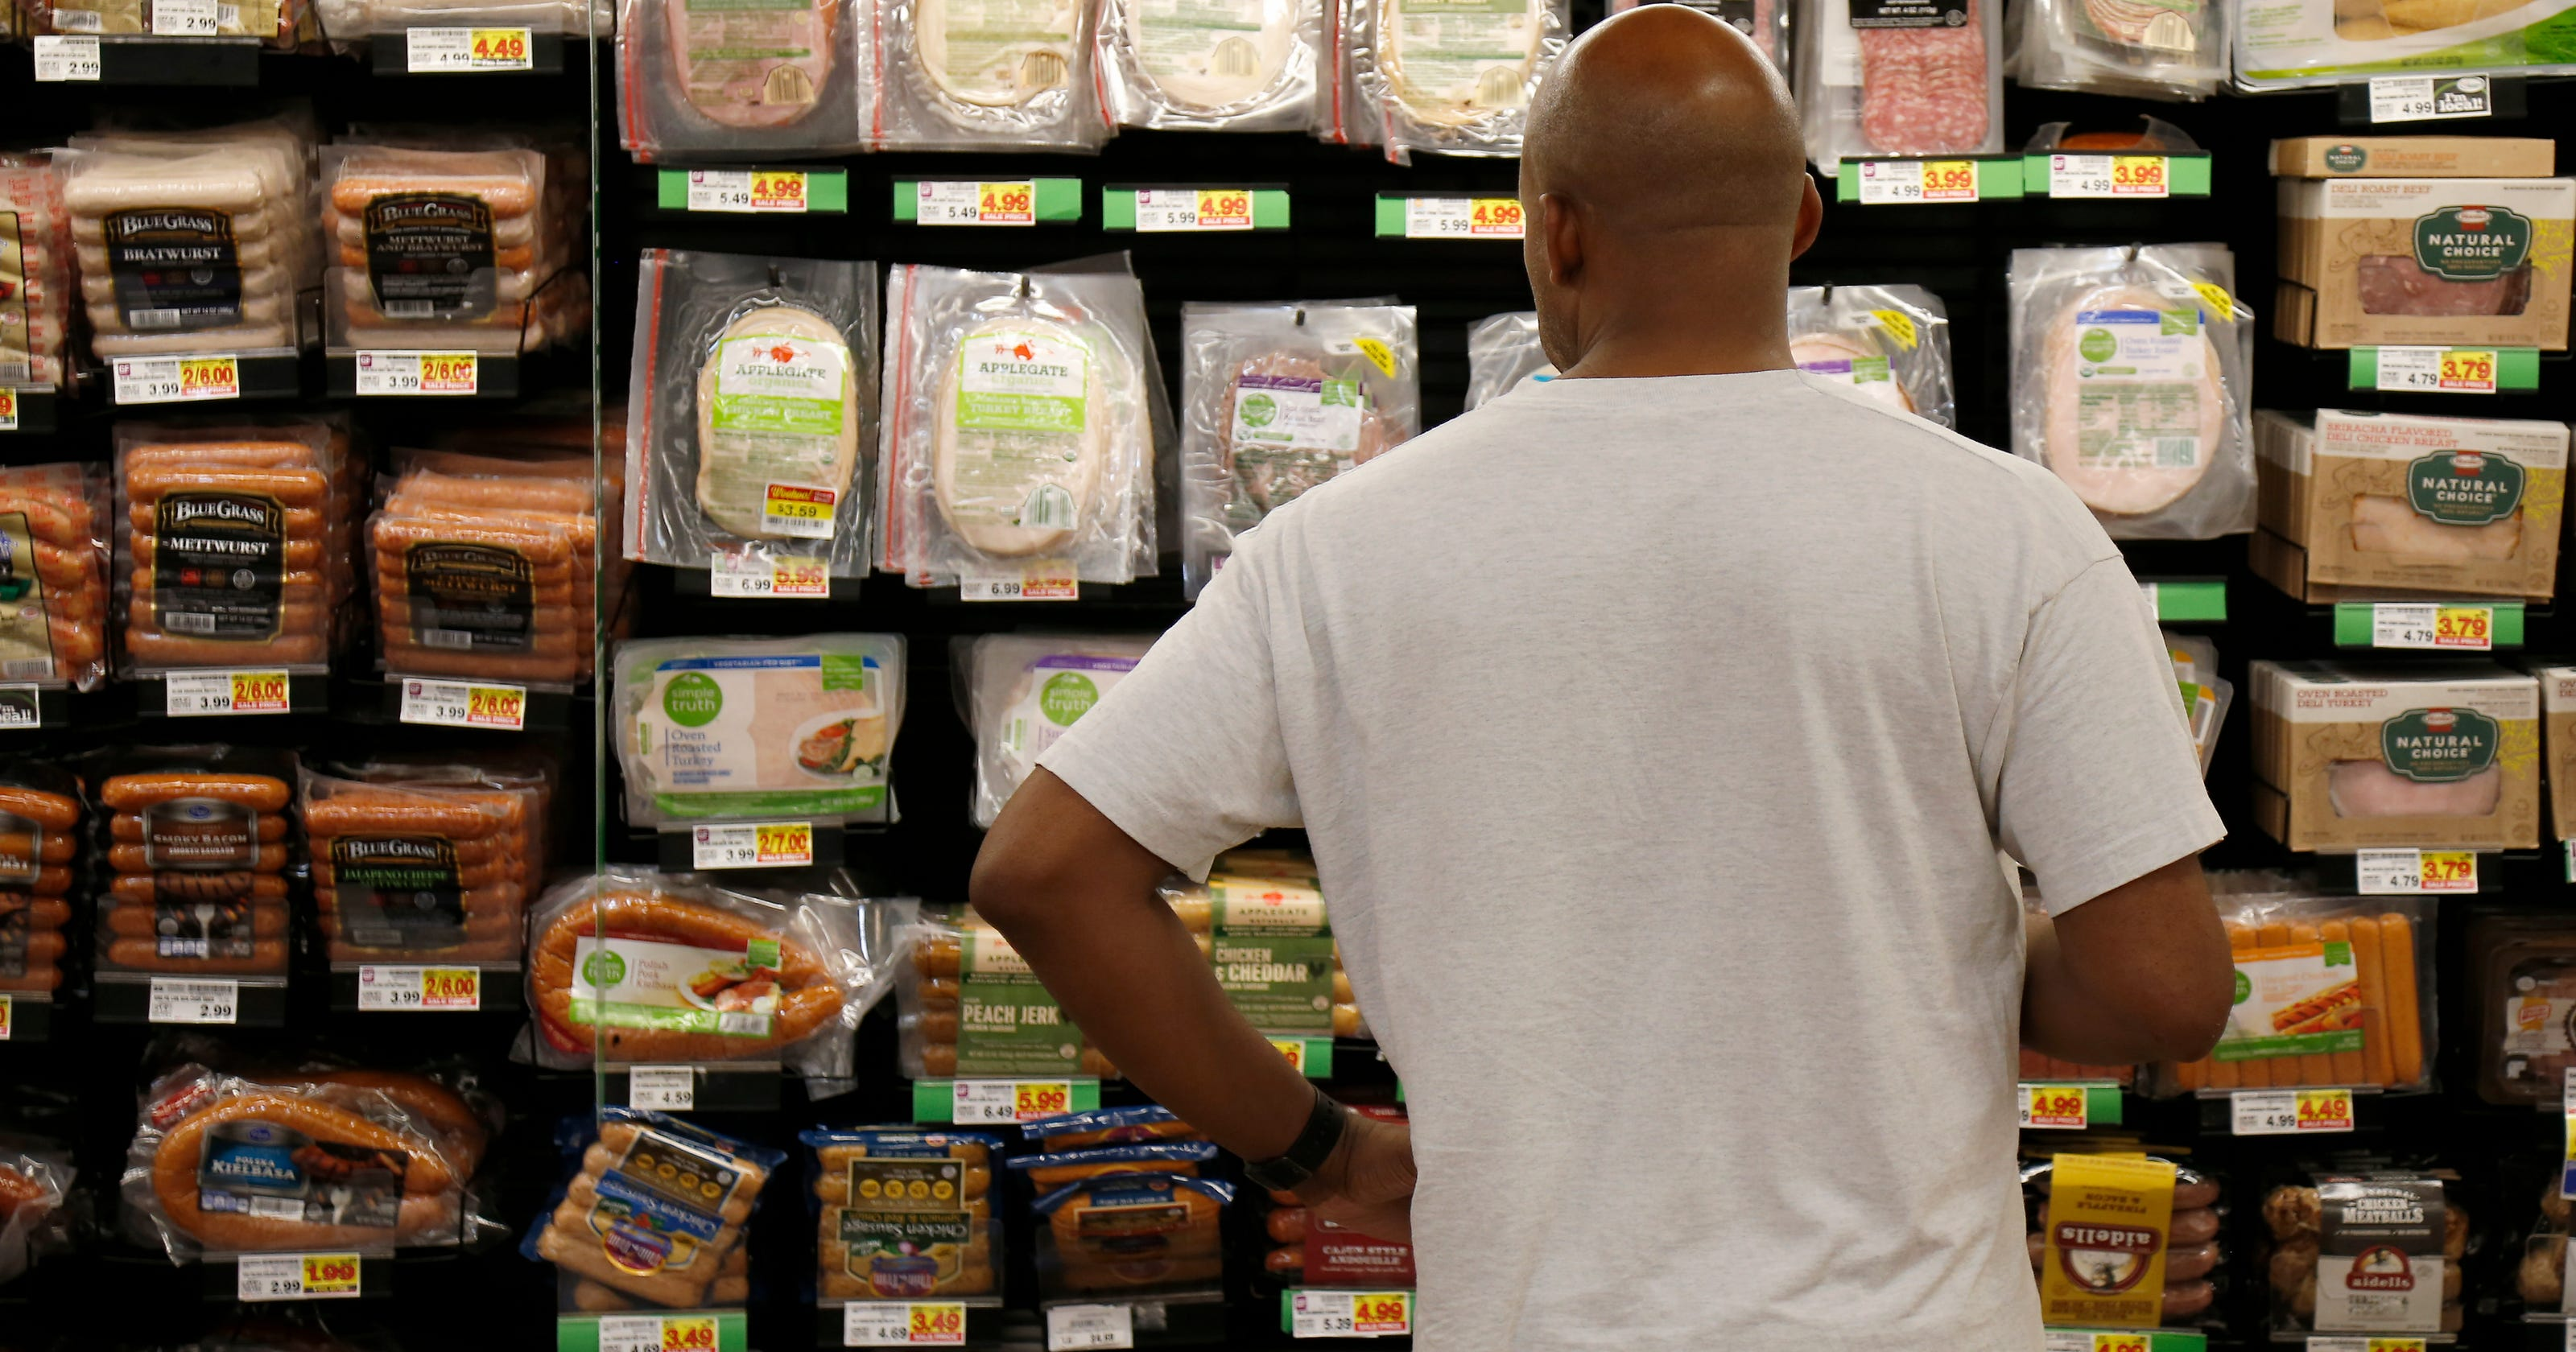 The Simple Truth: Private Selection, other Kroger brands drive sales